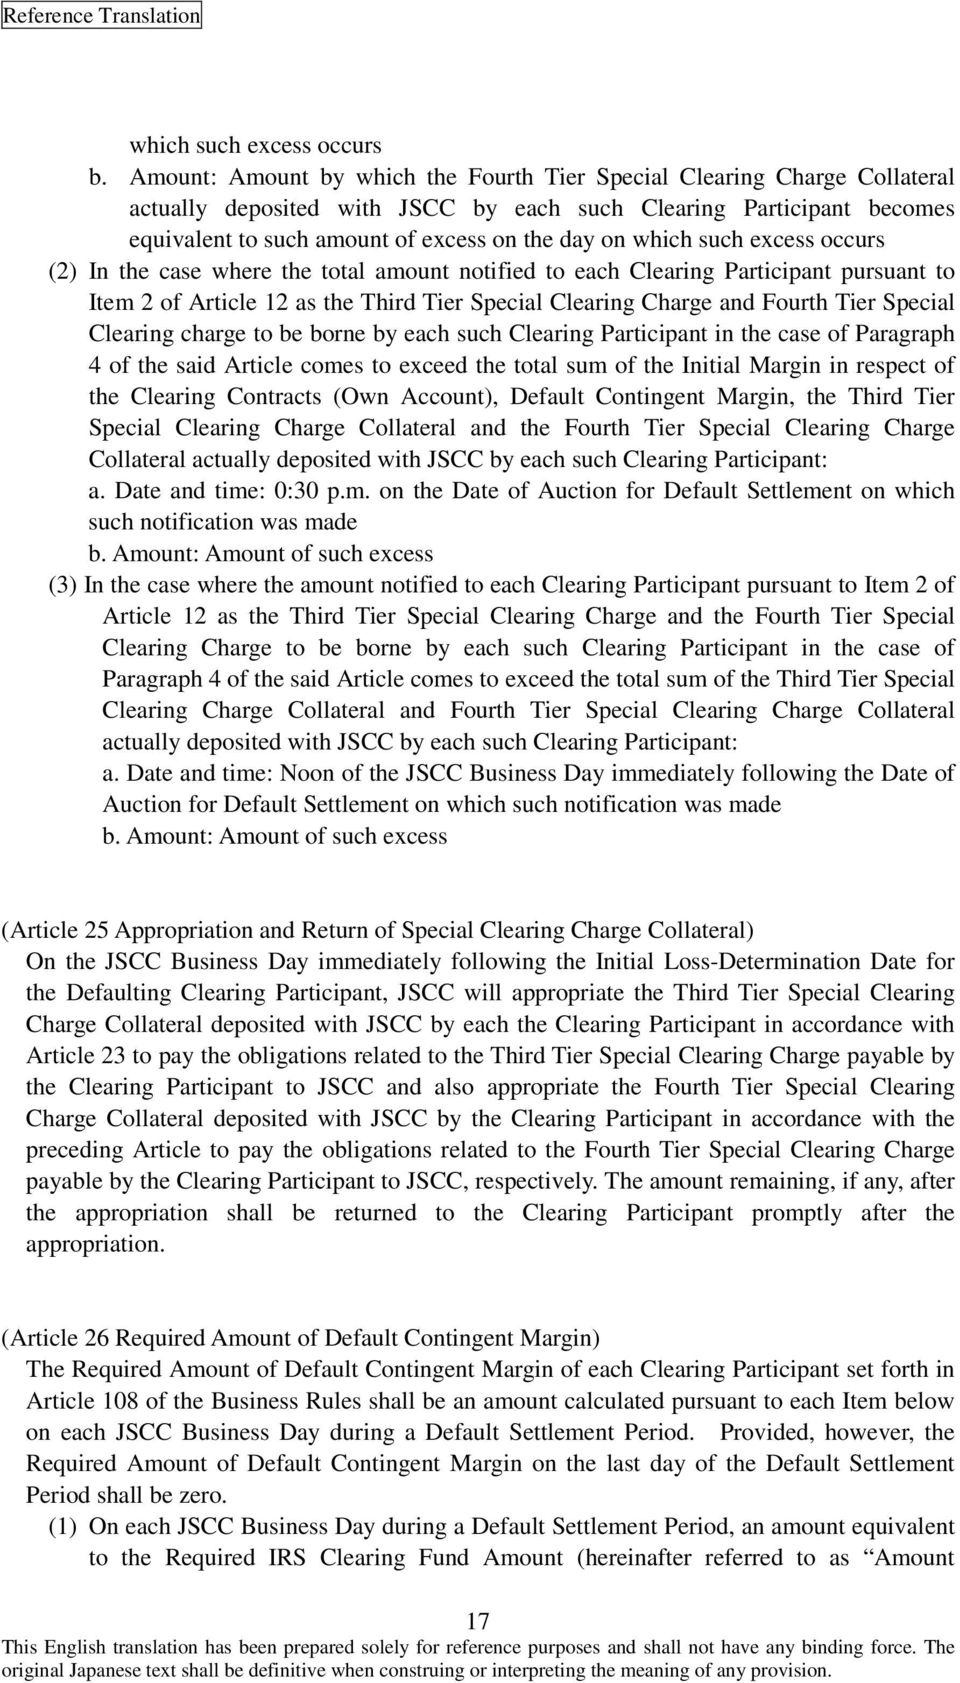 which such excess occurs (2) In the case where the total amount notified to each Clearing Participant pursuant to Item 2 of Article 12 as the Third Tier Special Clearing Charge and Fourth Tier